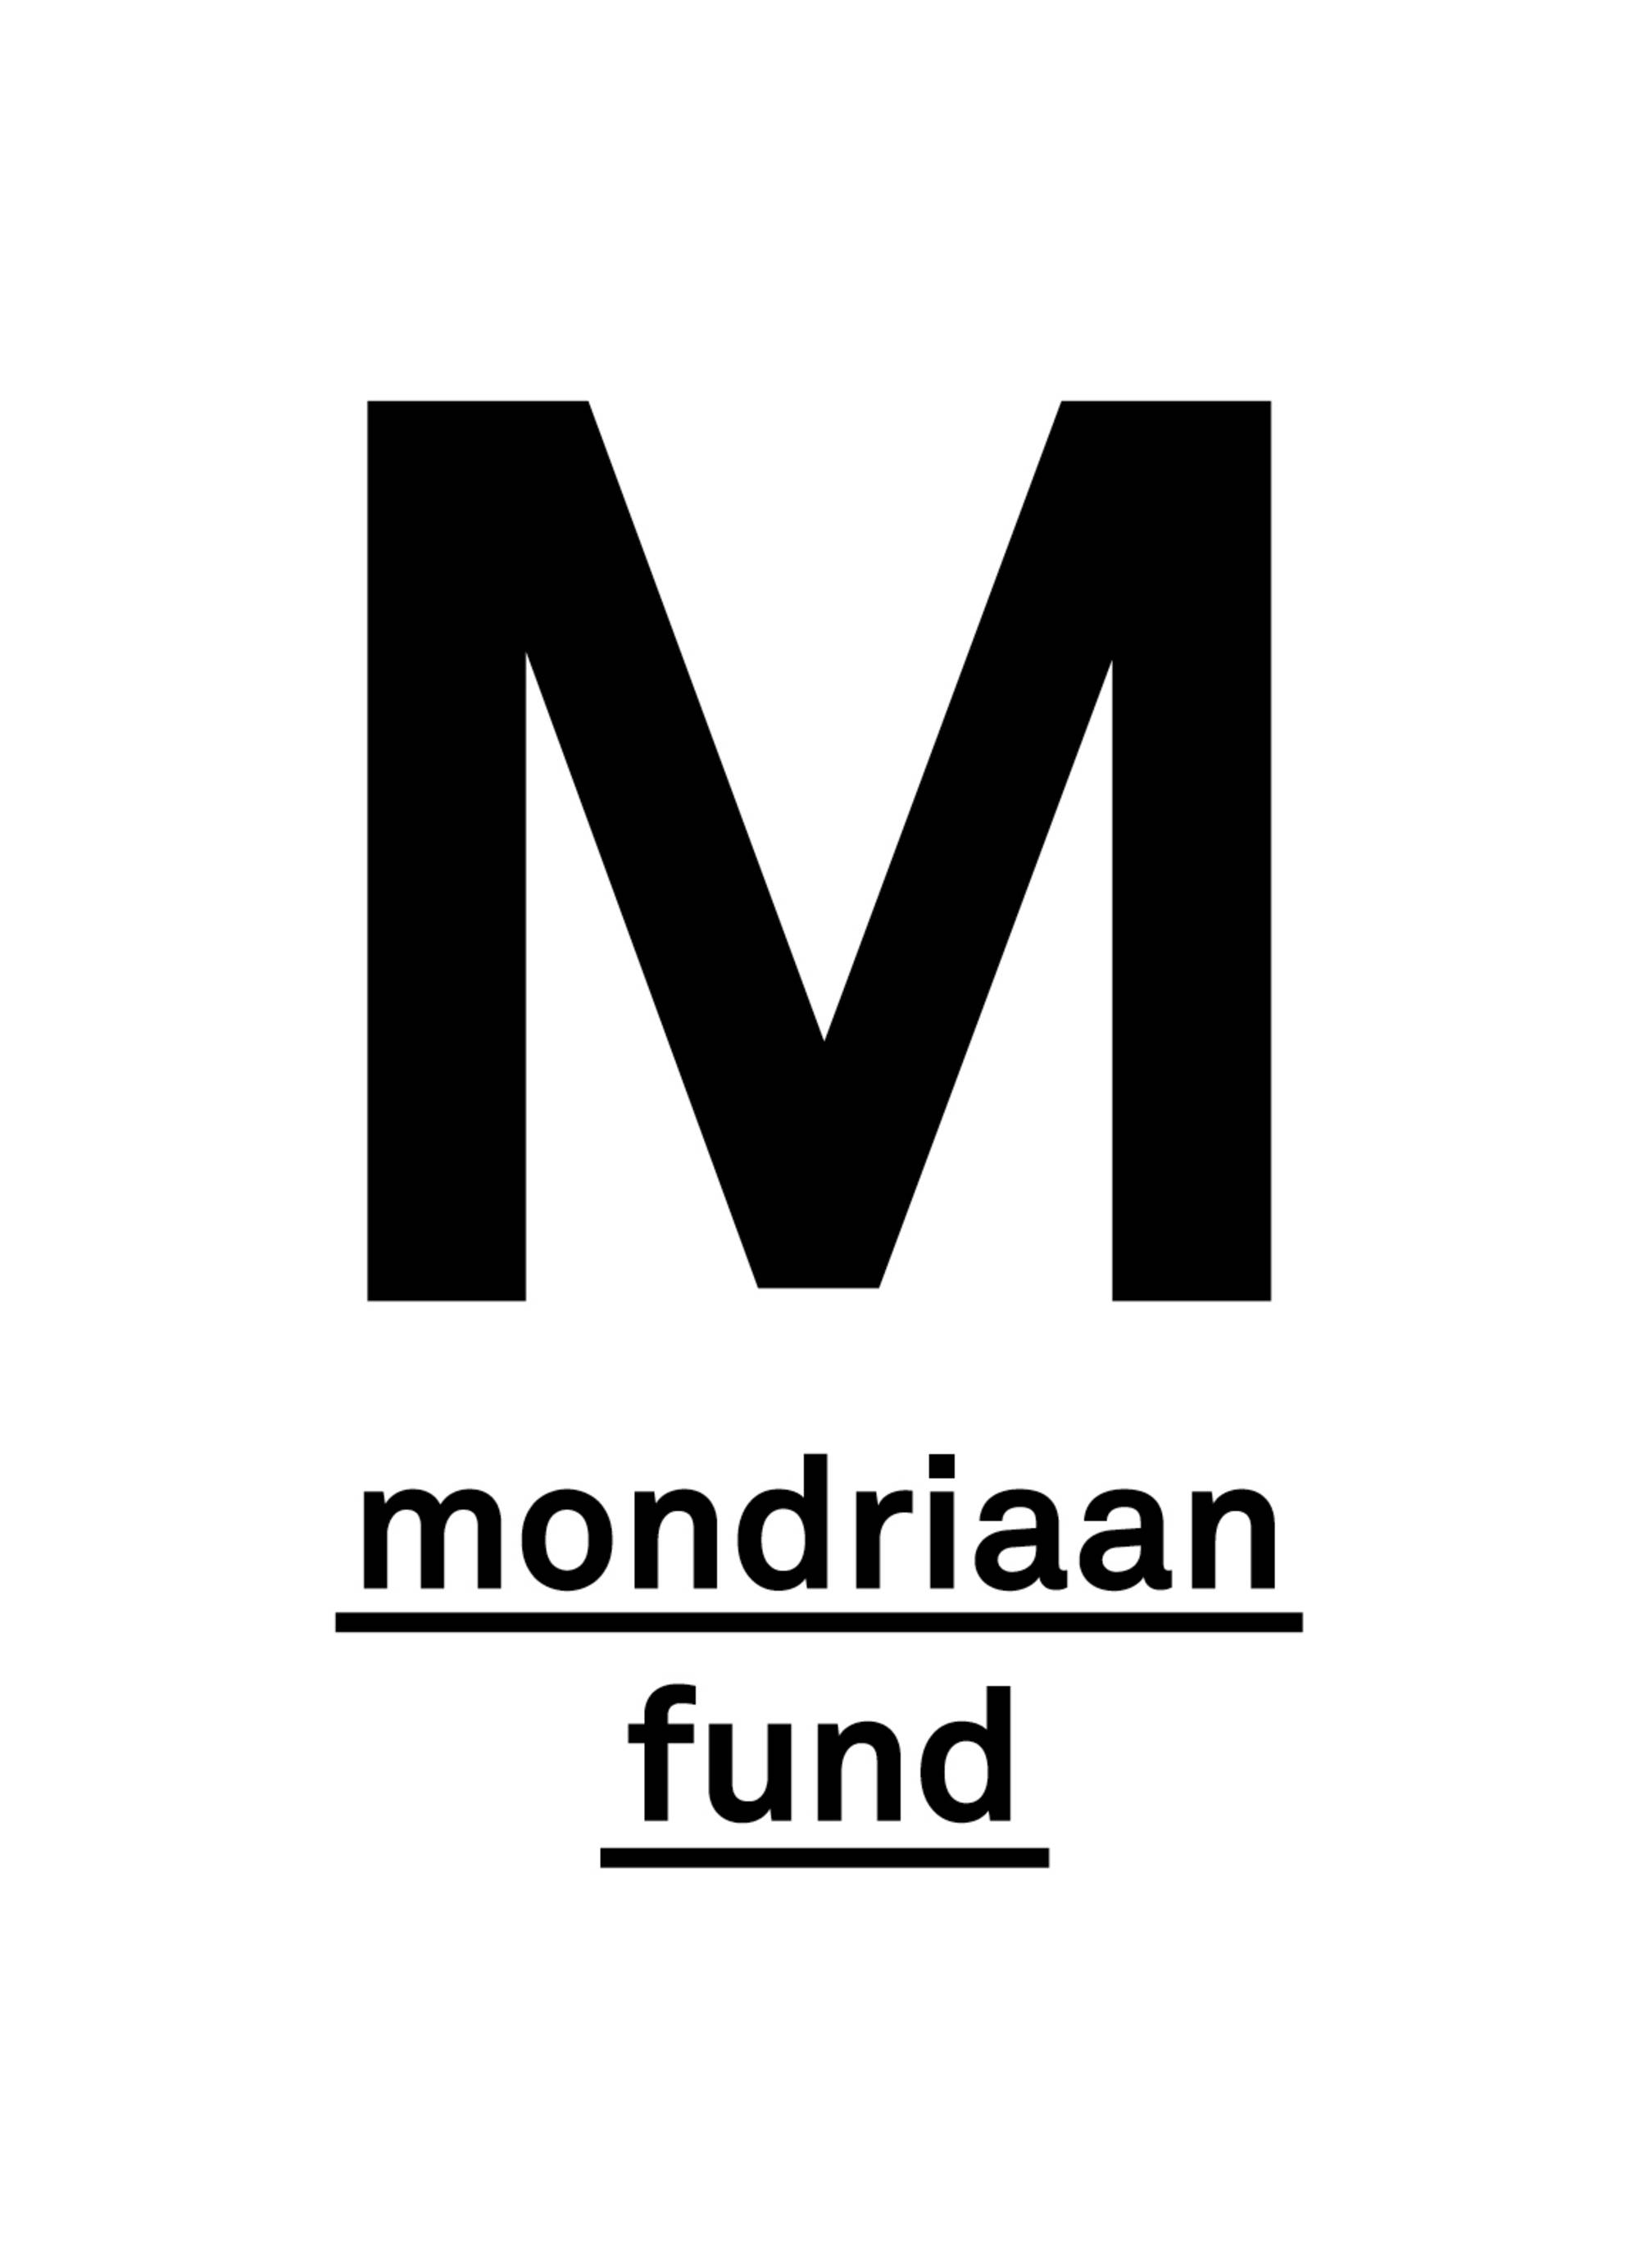 Supported by Mondriaan Fund